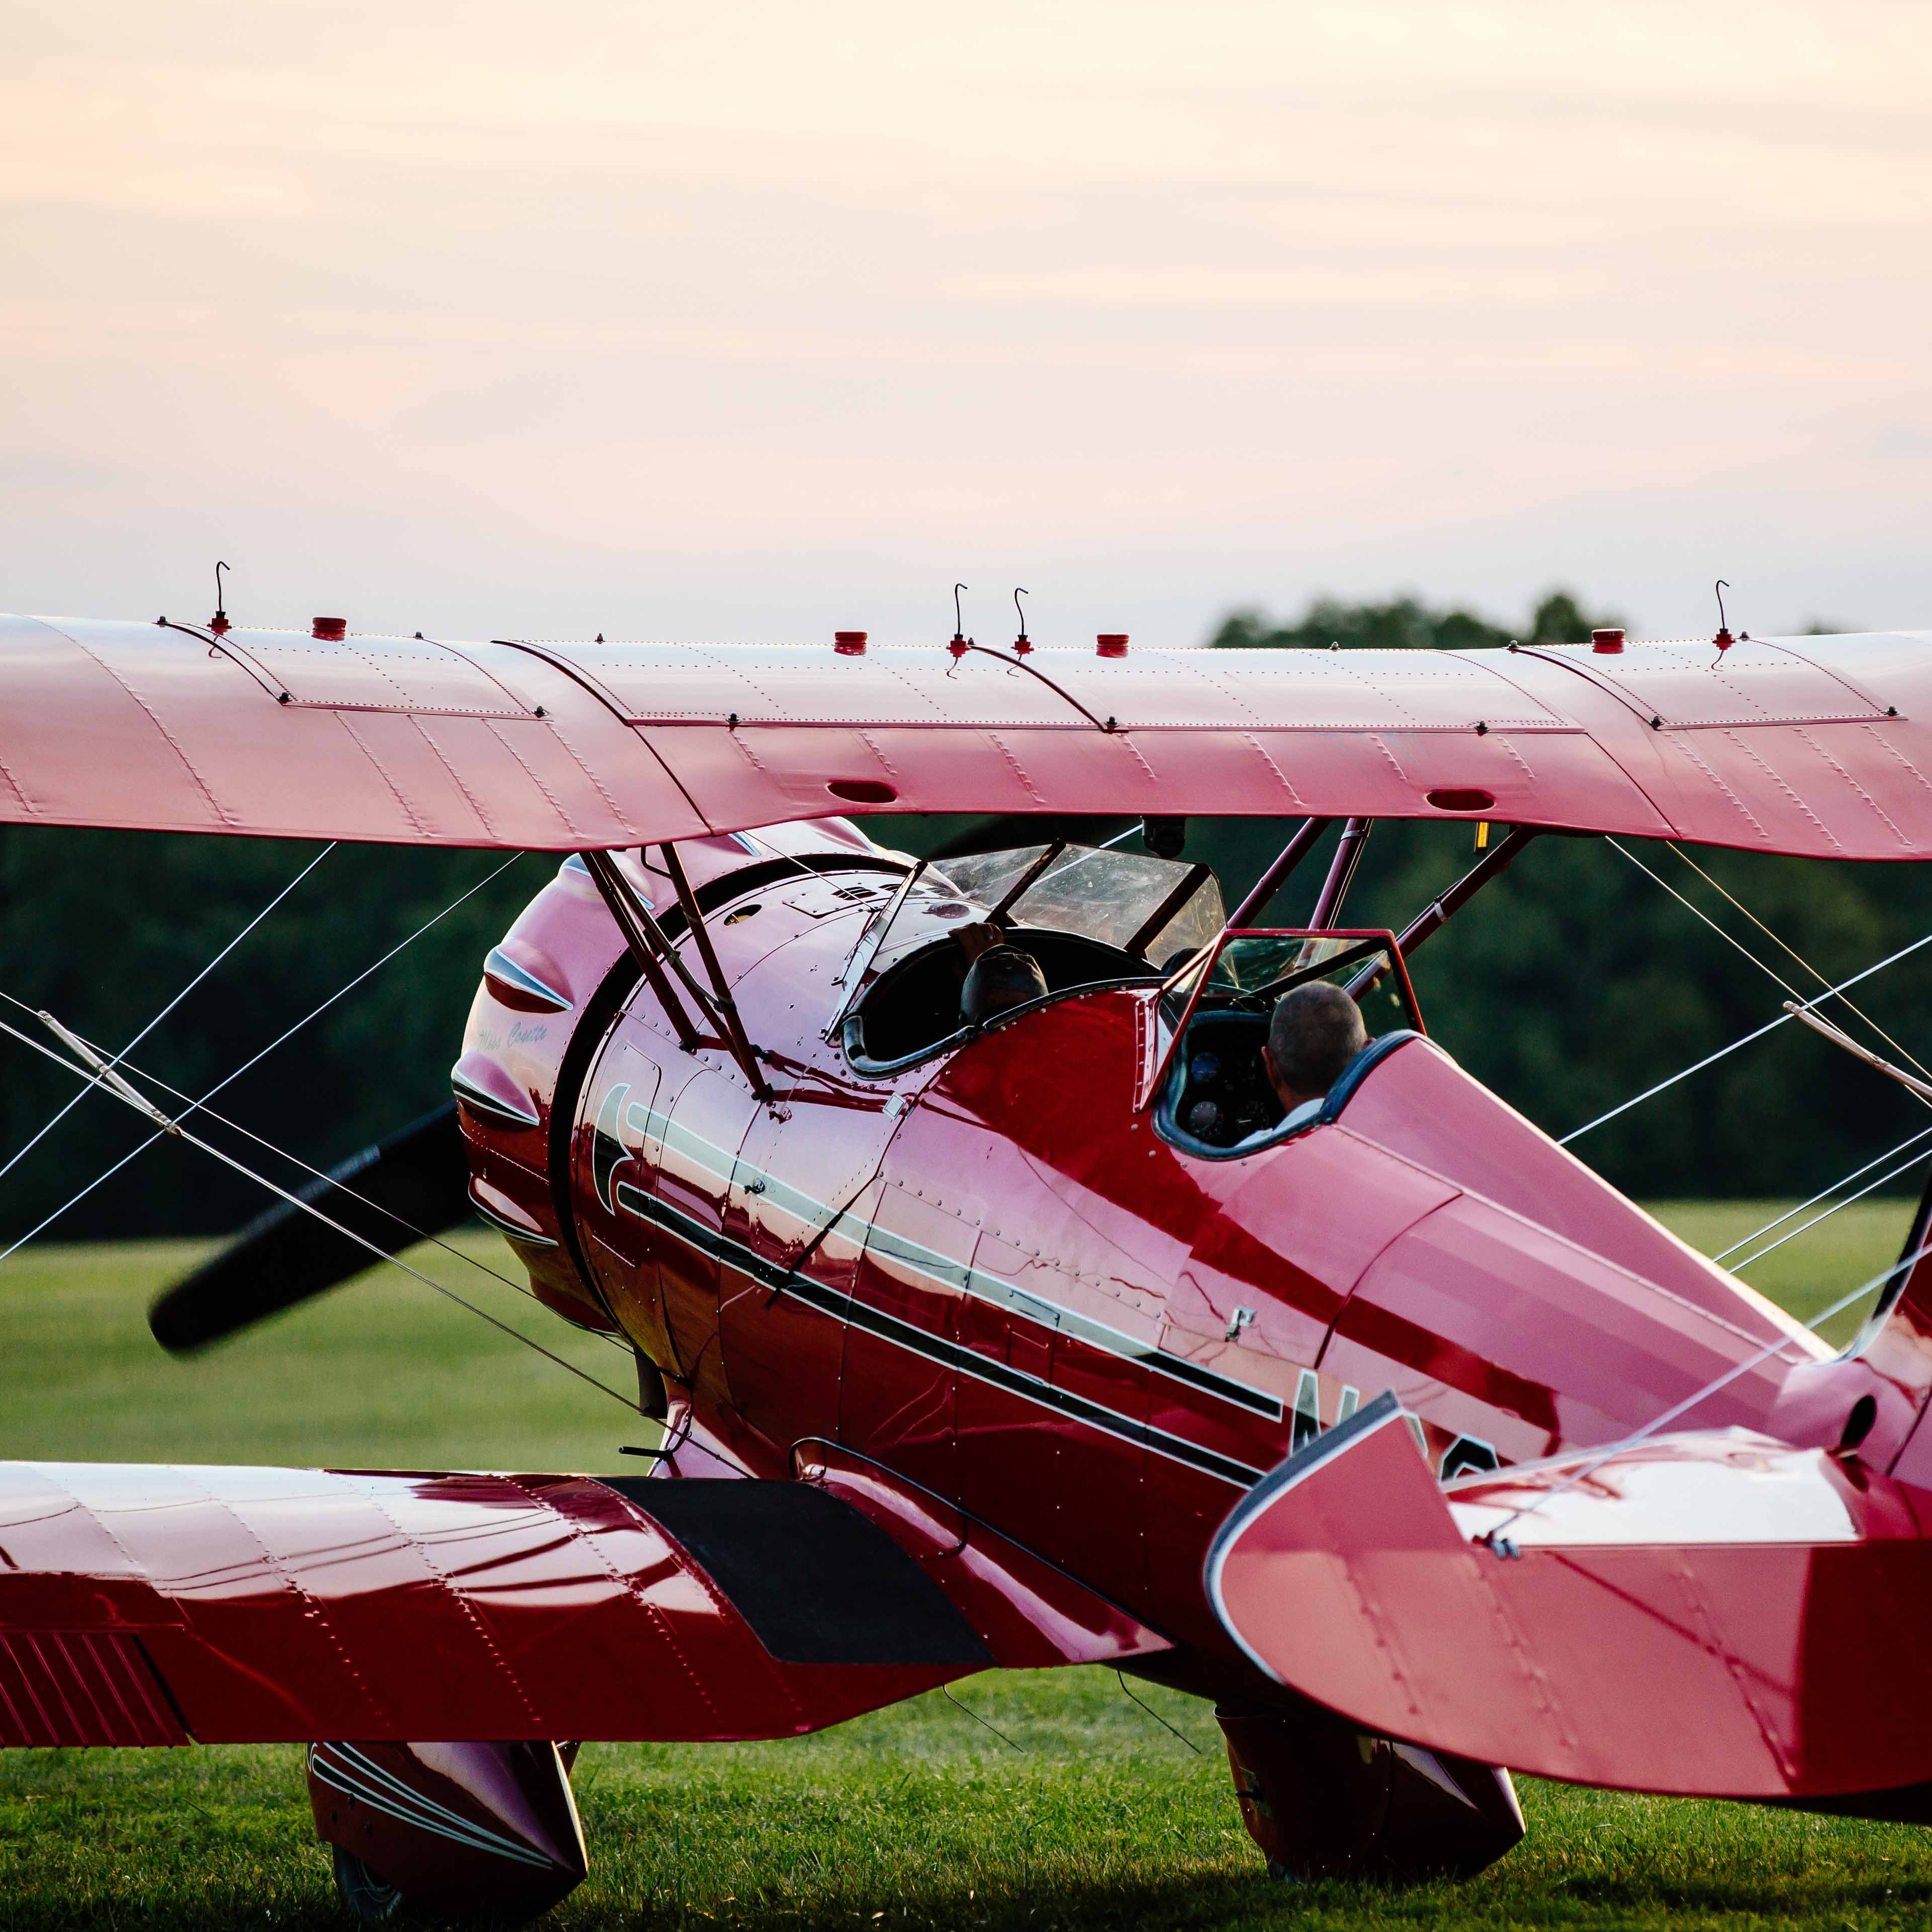 BI-PLANE Opens in new window